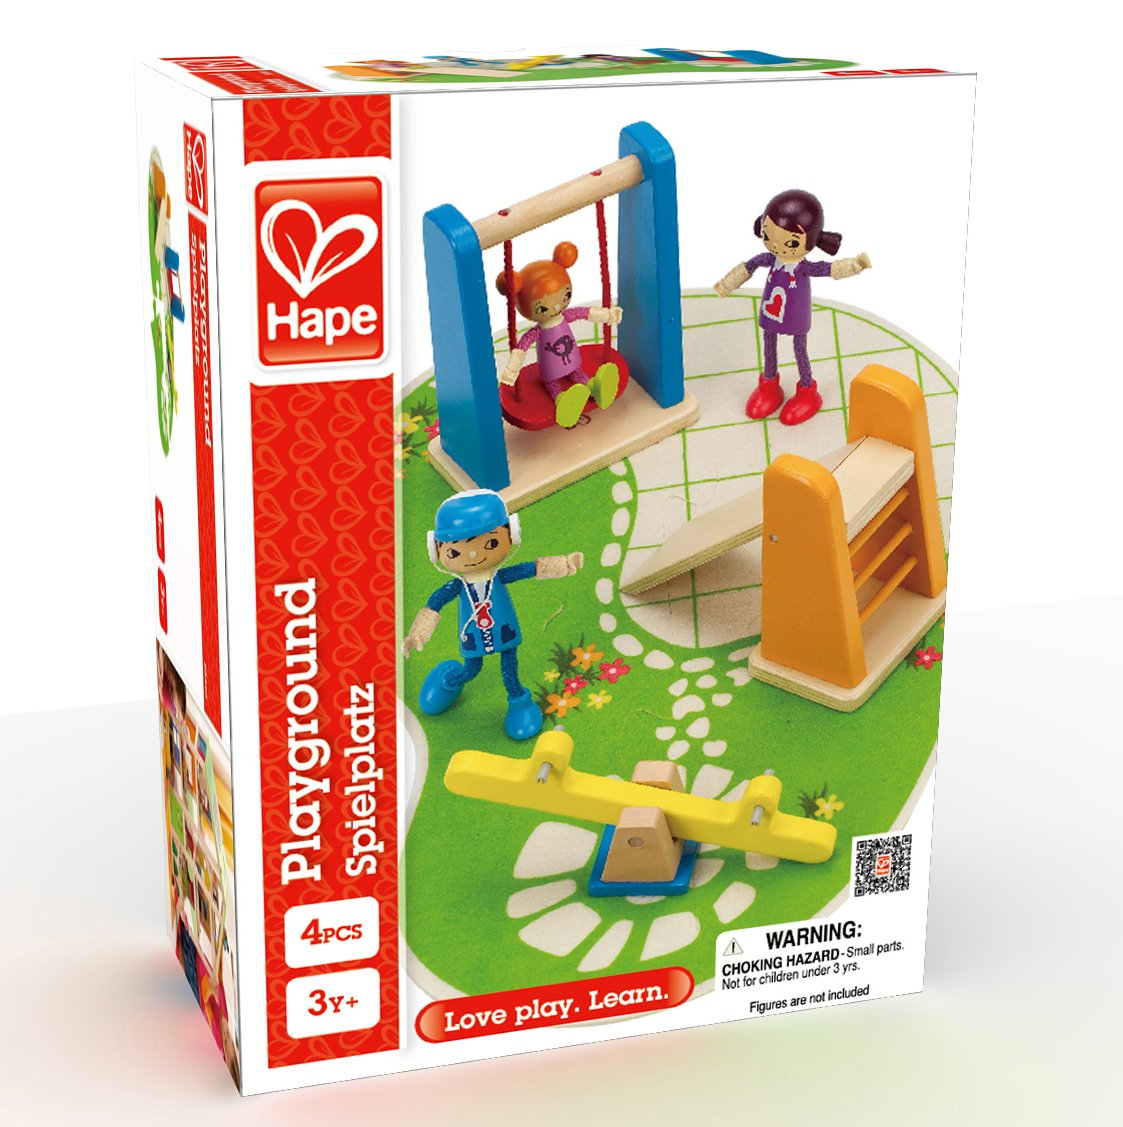 Hape E3461  Wooden Doll House Furniture Playground Set And Accessories Doll House Accessories, by Hape